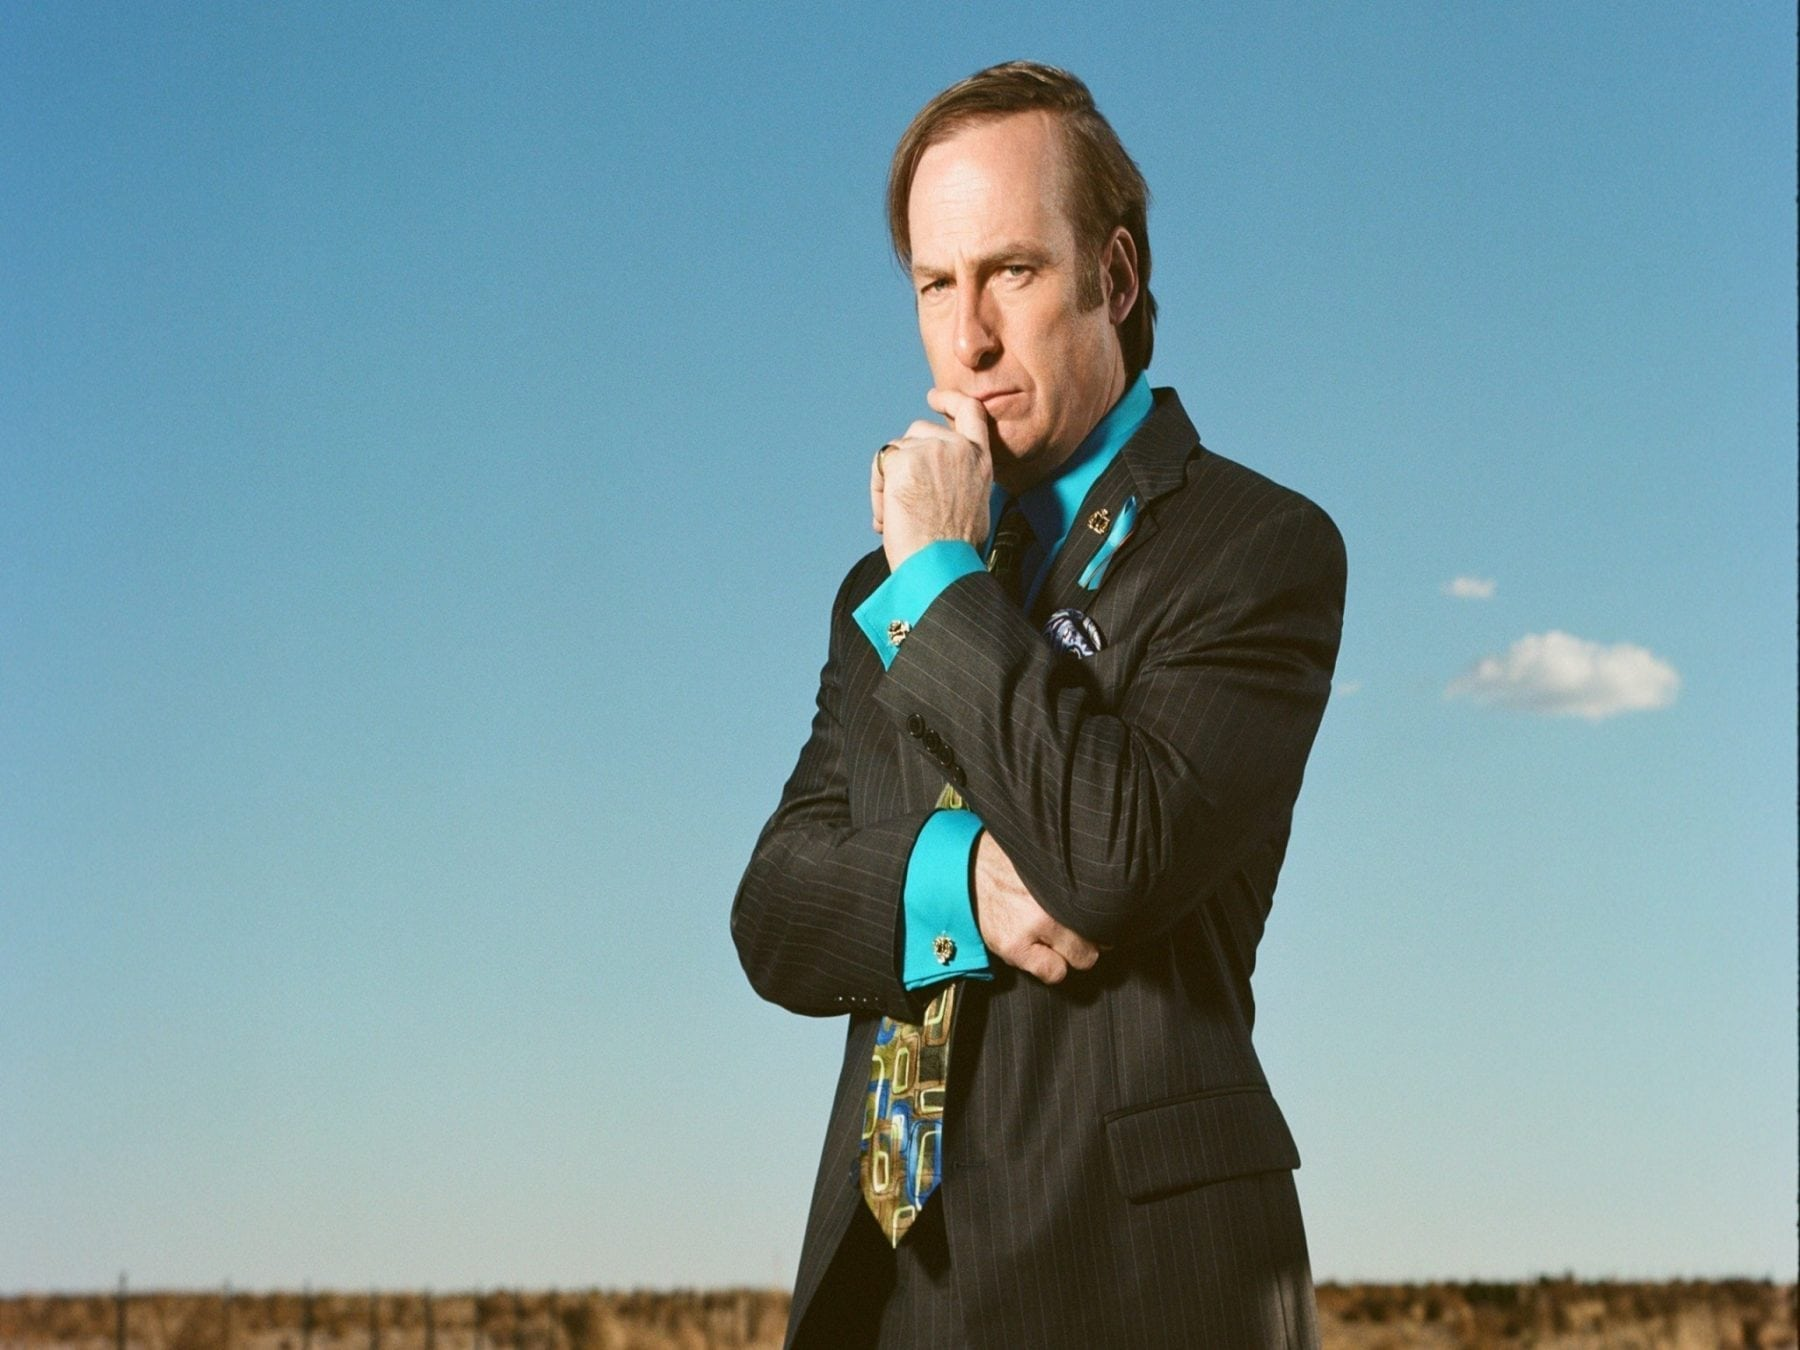 Better call saul air date in Sydney